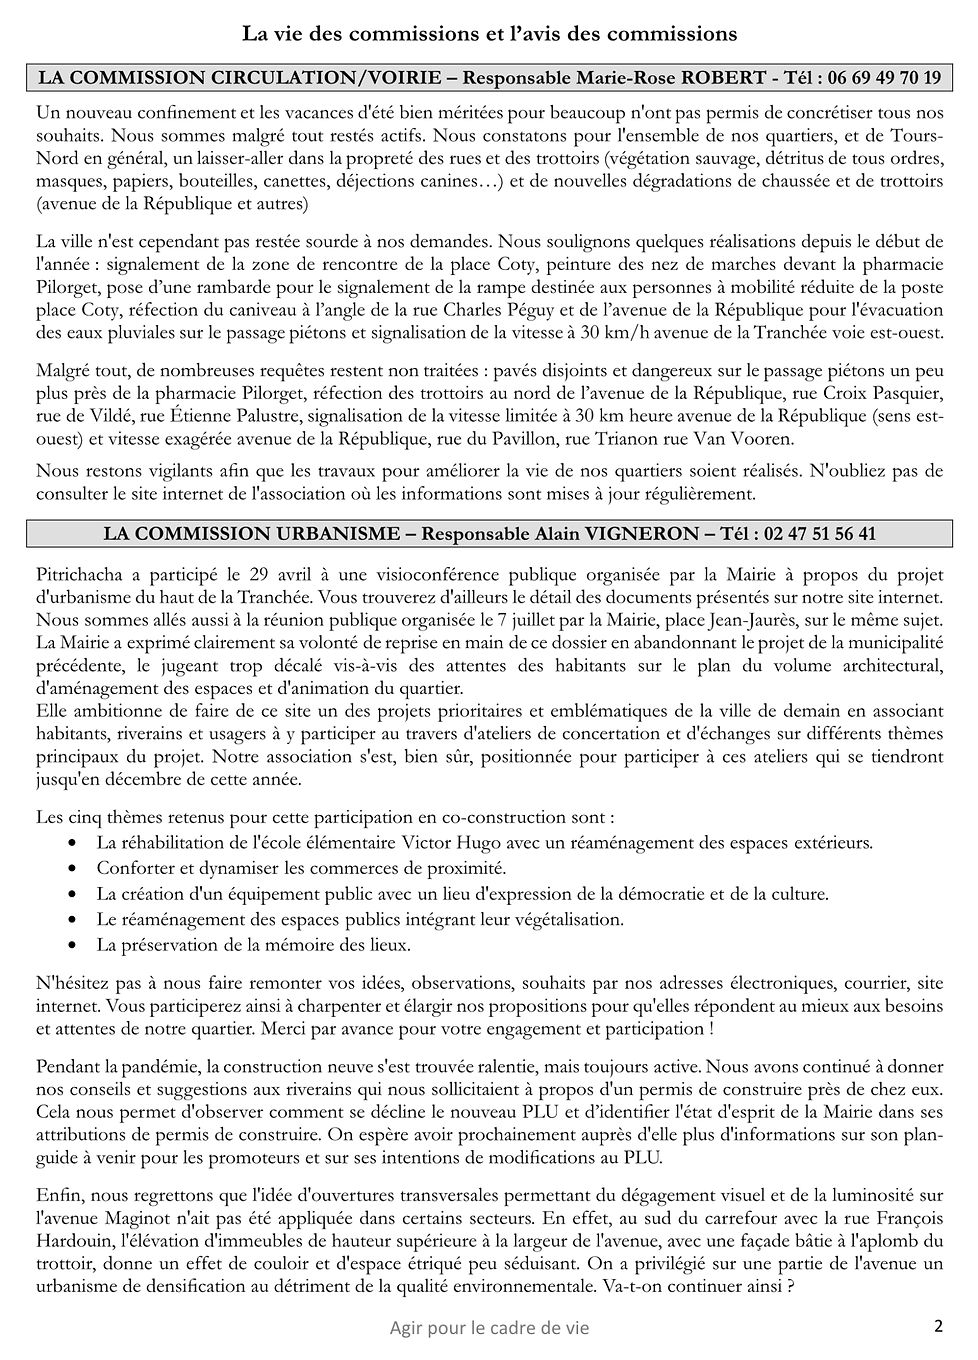 Bulletin N°25 Pitrichacha page 2.png